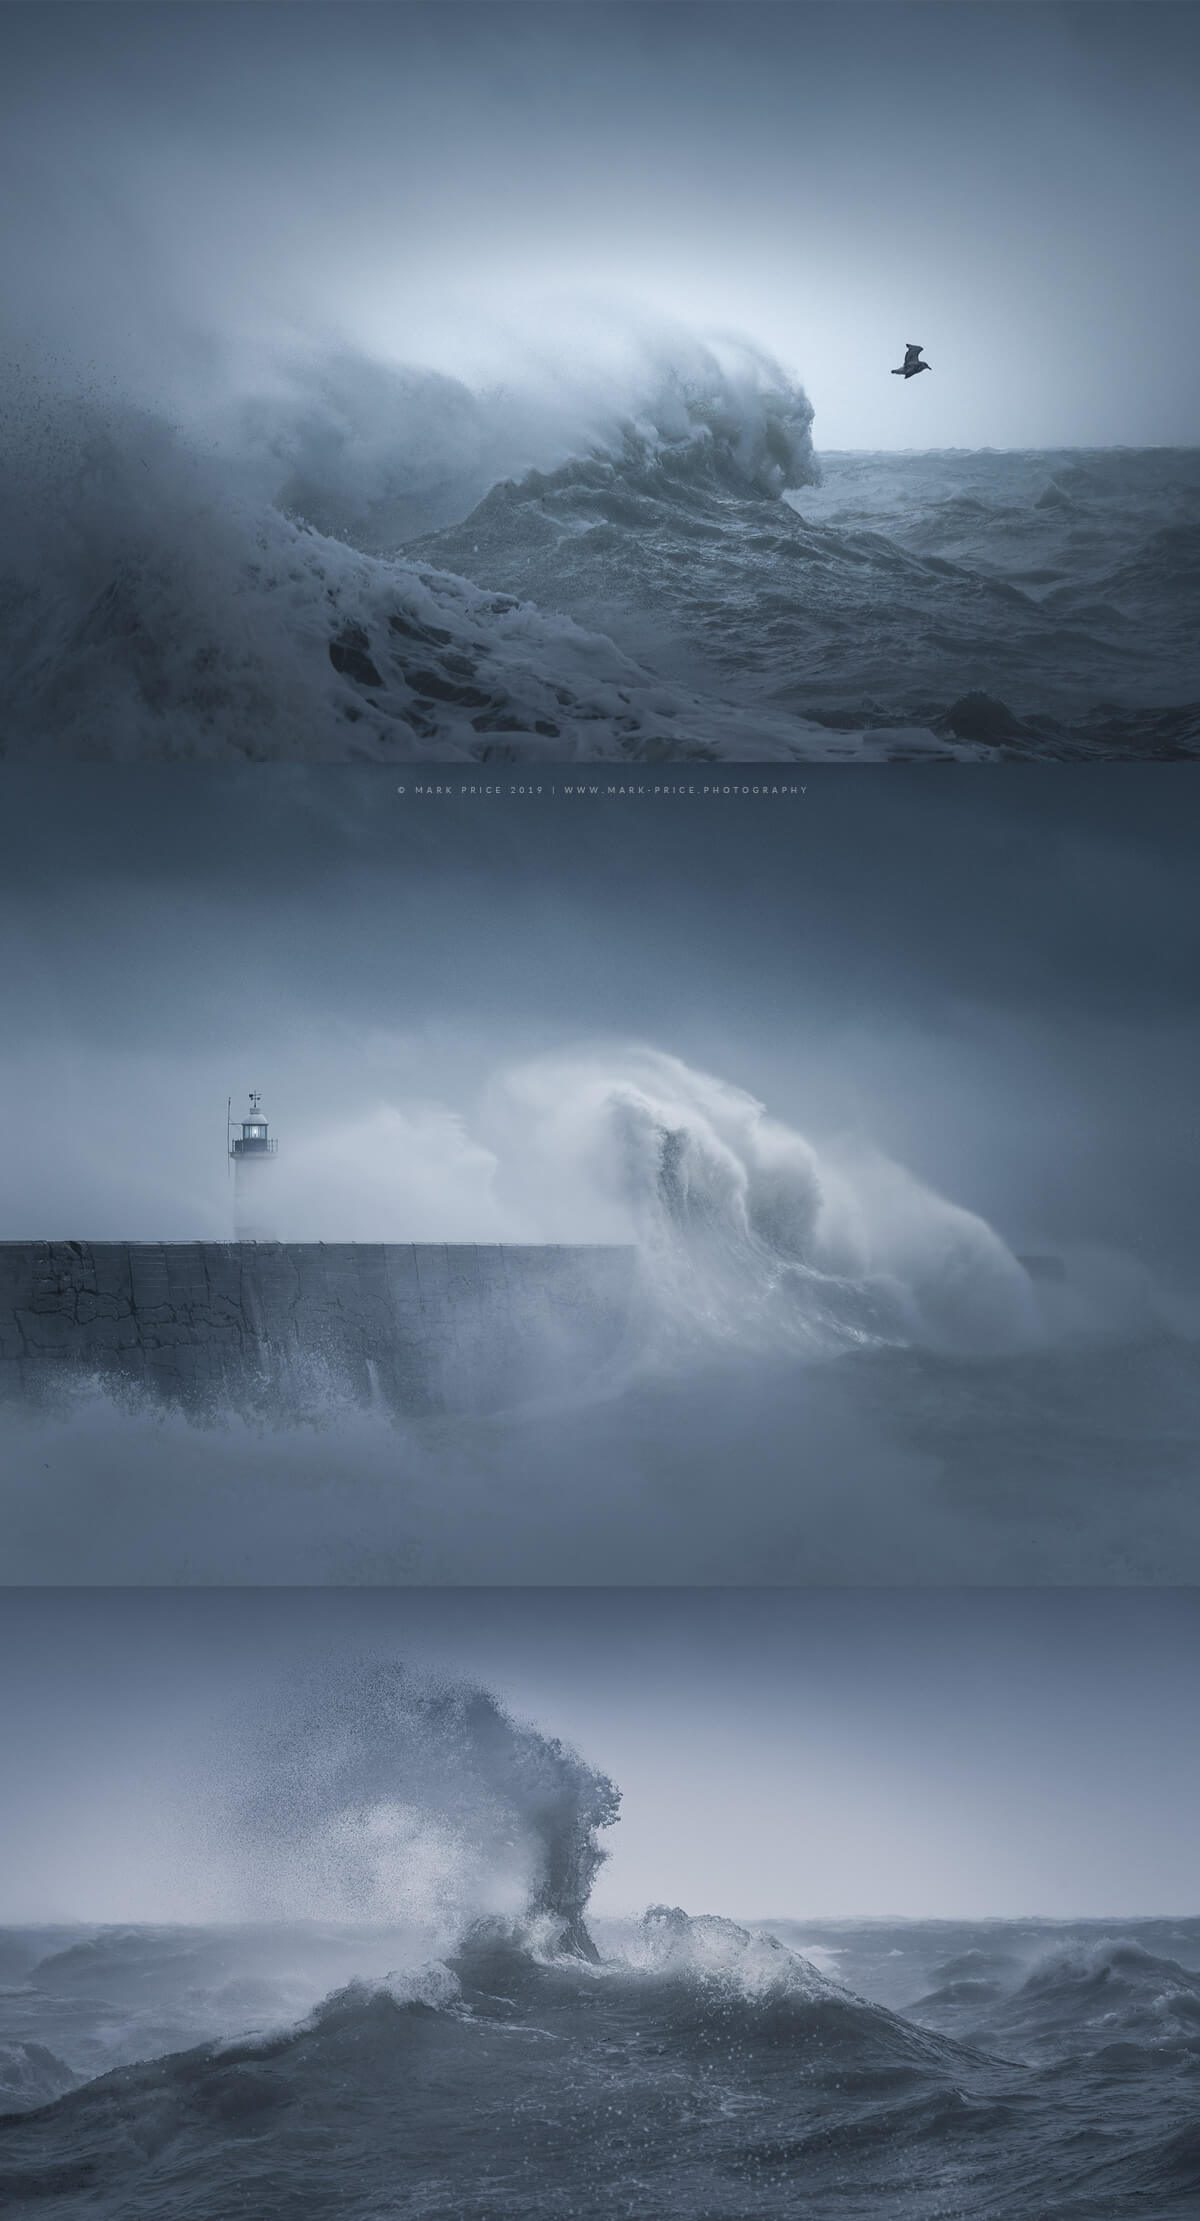 A 3 set of seascape images from Sussex by Mark Price